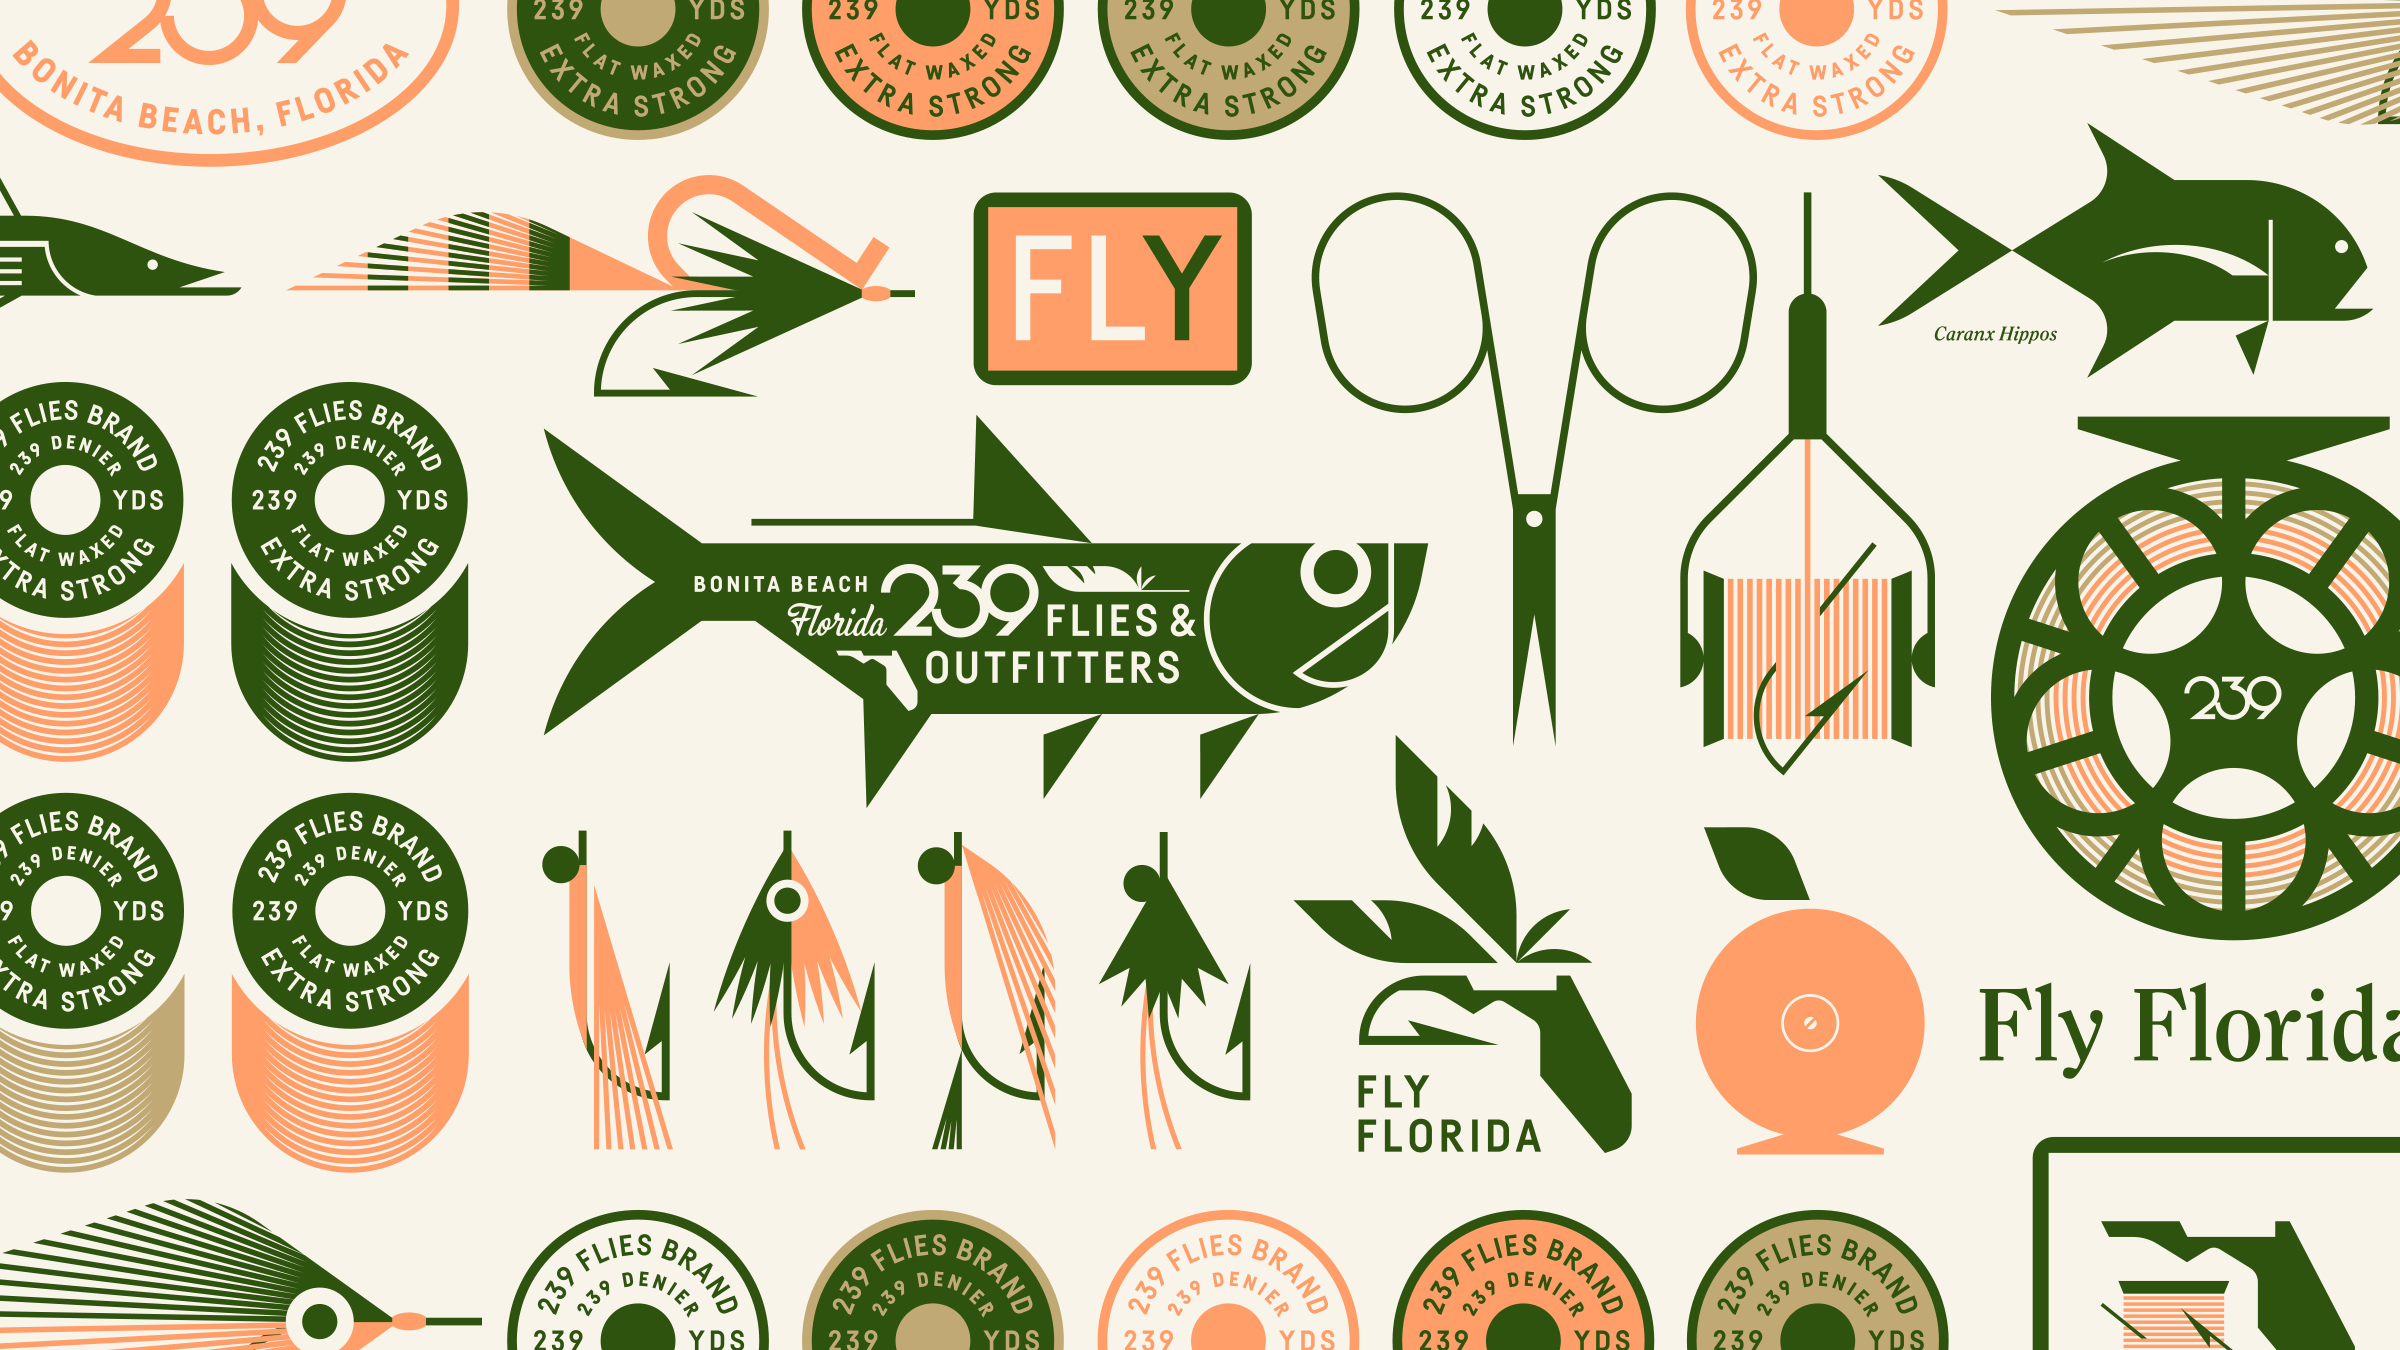 239 Flies Logo and Brand Identity Design